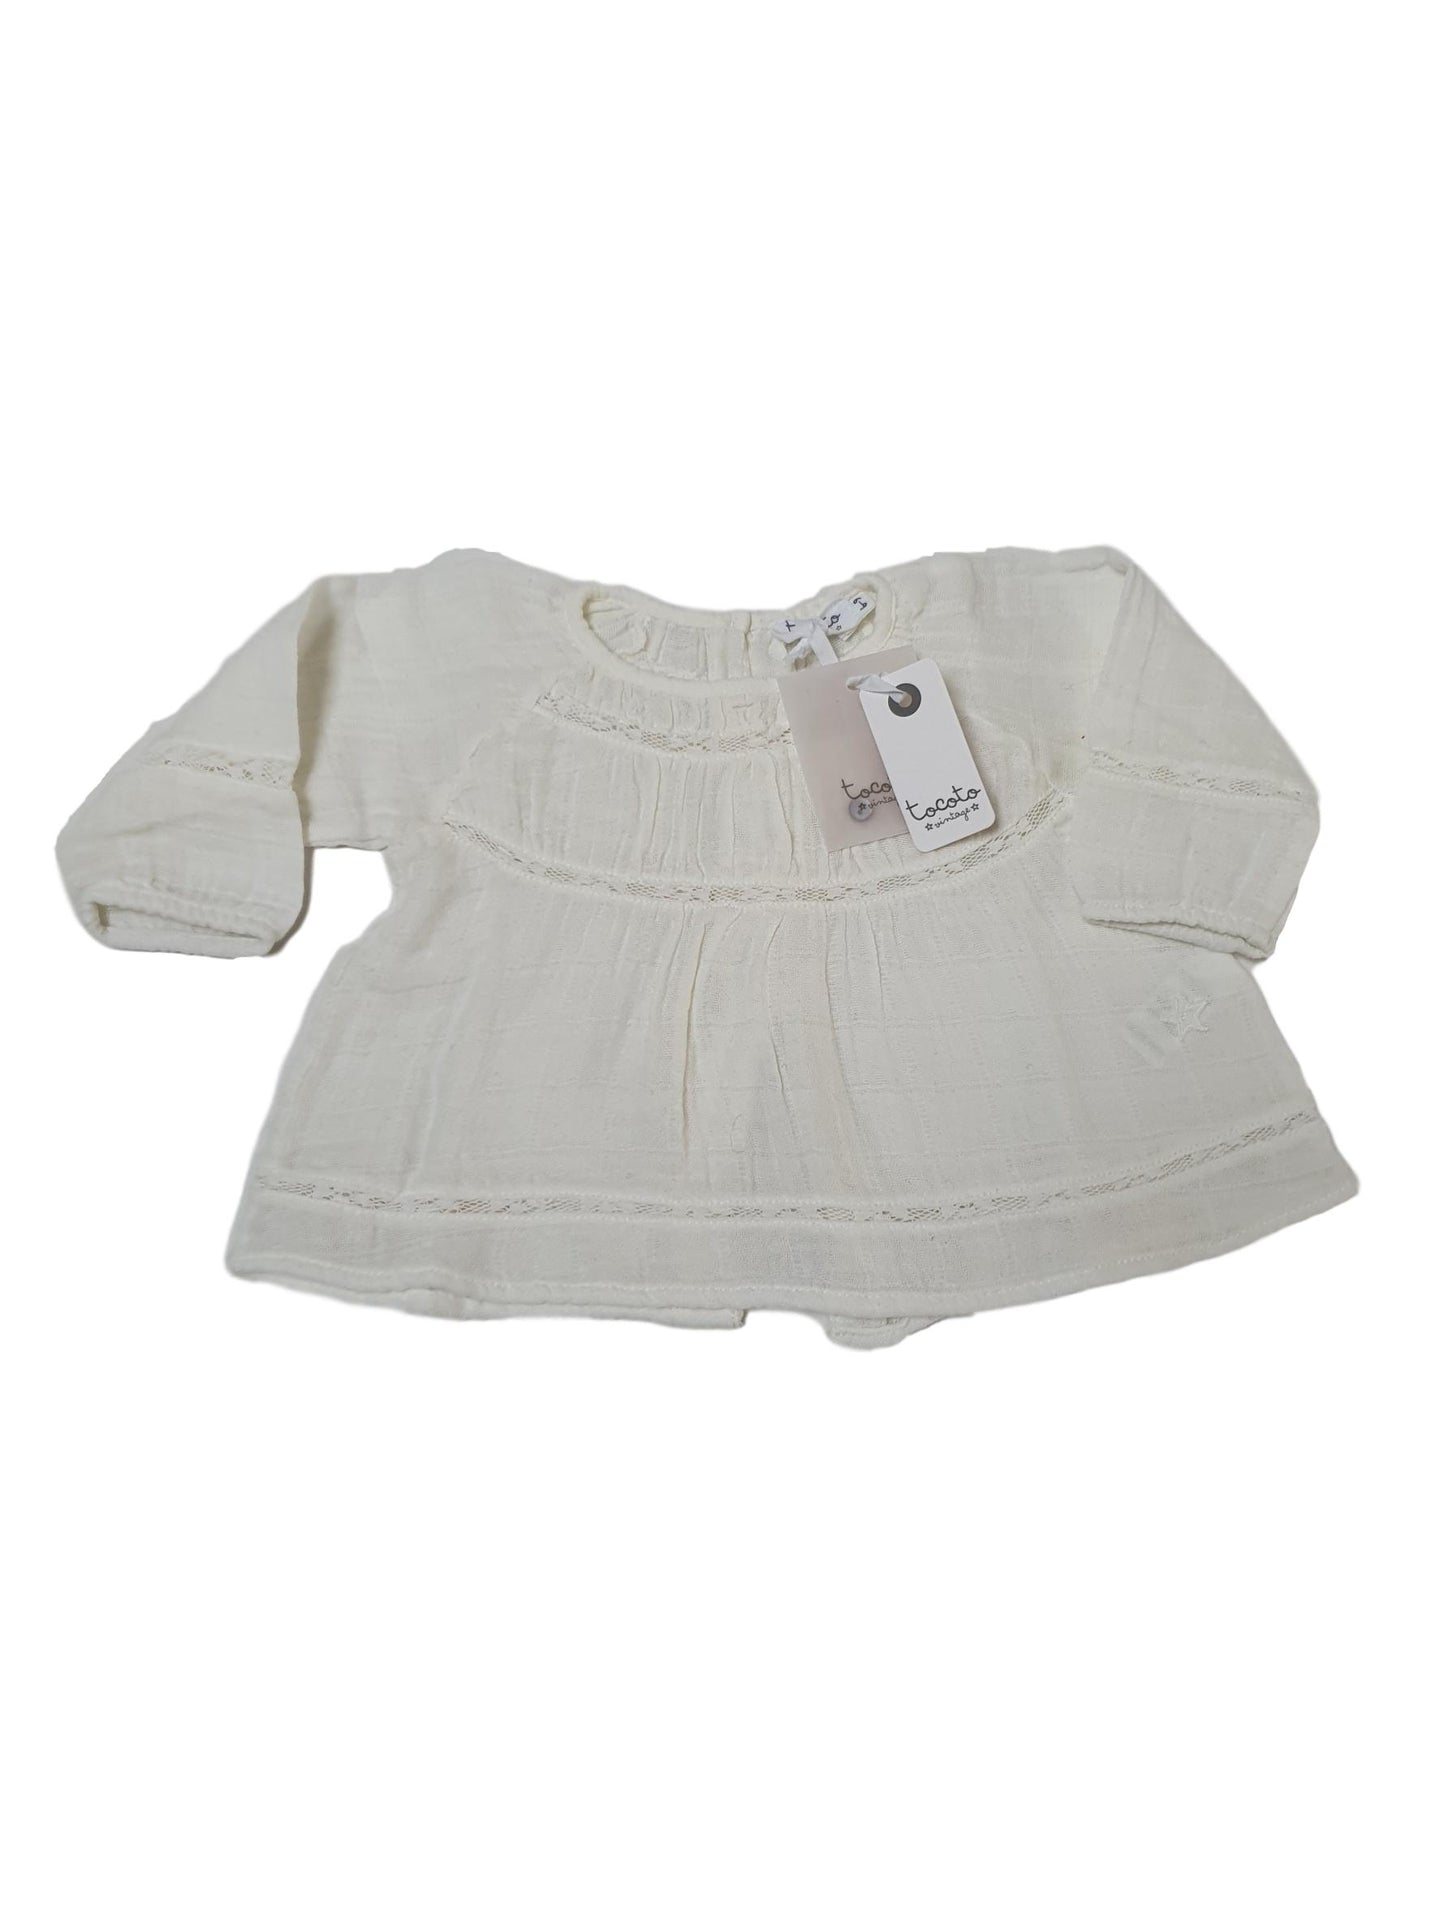 TOCOTO VINTAGE OUTLET girl top 6-9m